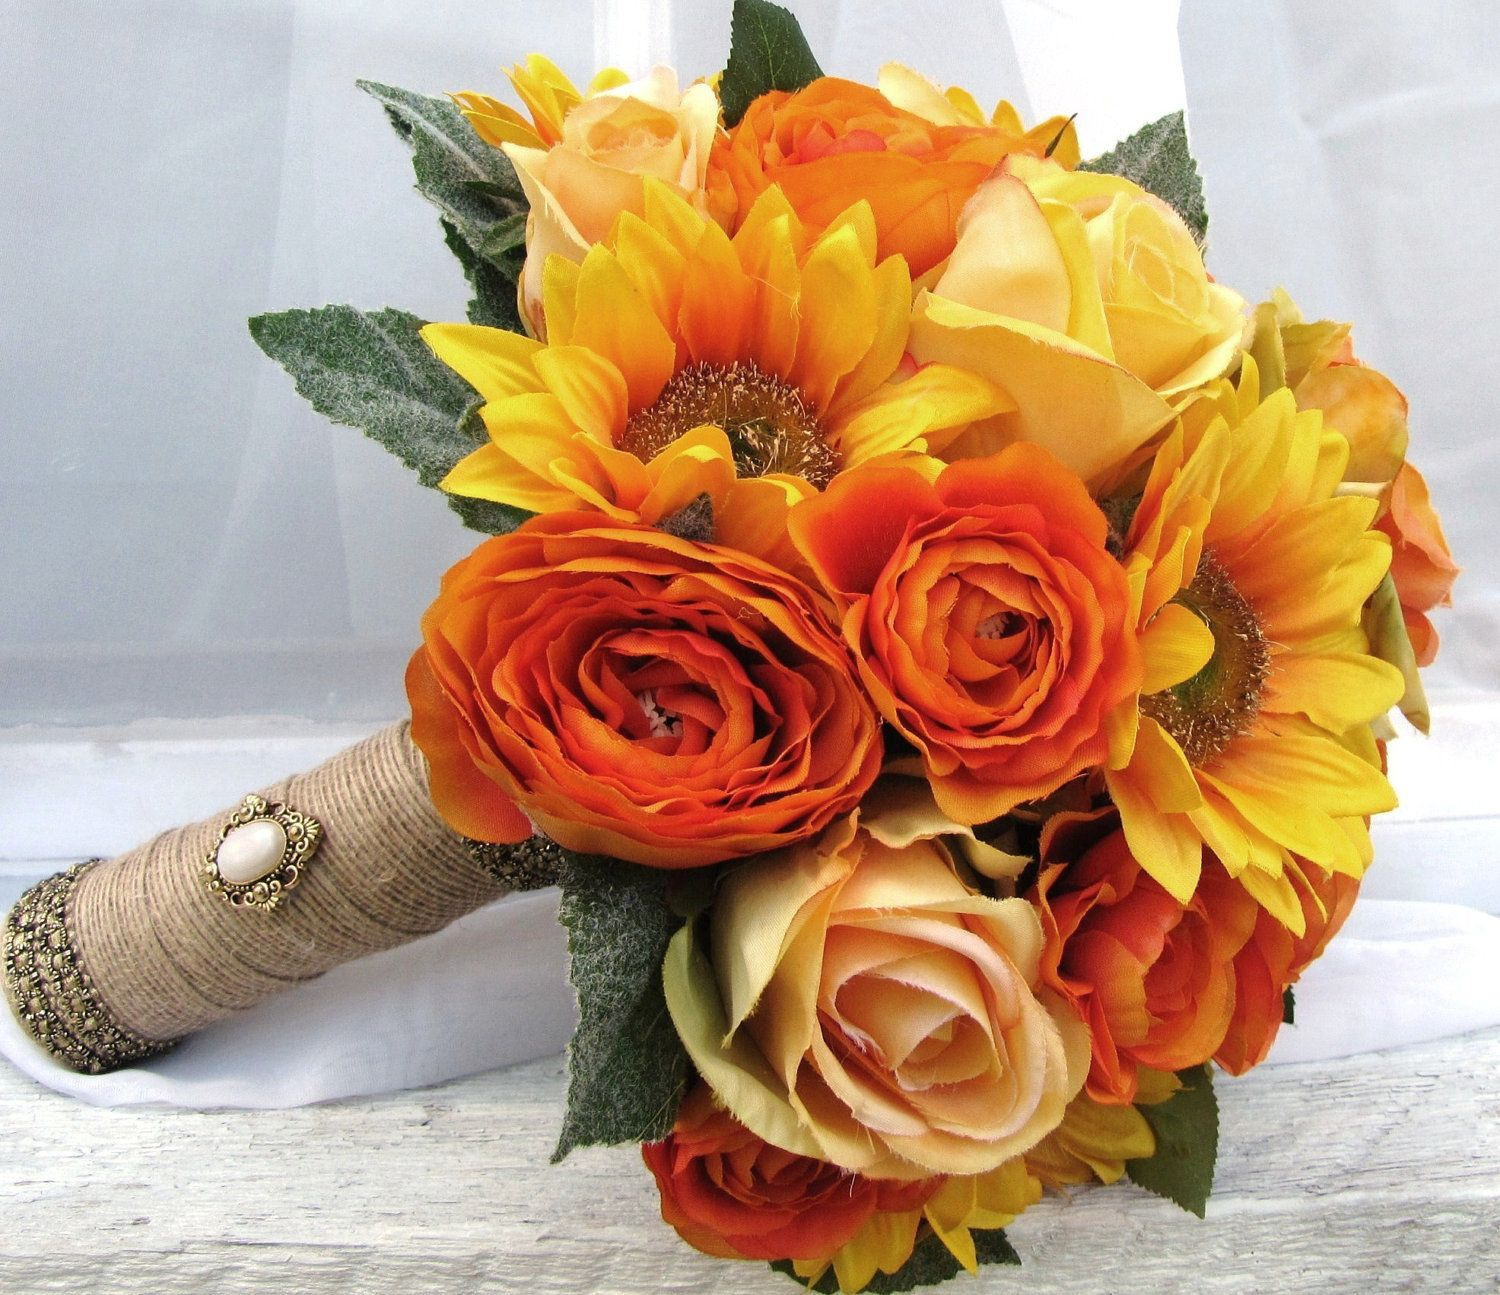 Wedding Flowers Yellow Roses: Silk Bridal Wedding Bouquet Sunflowers Yellow Roses Orange